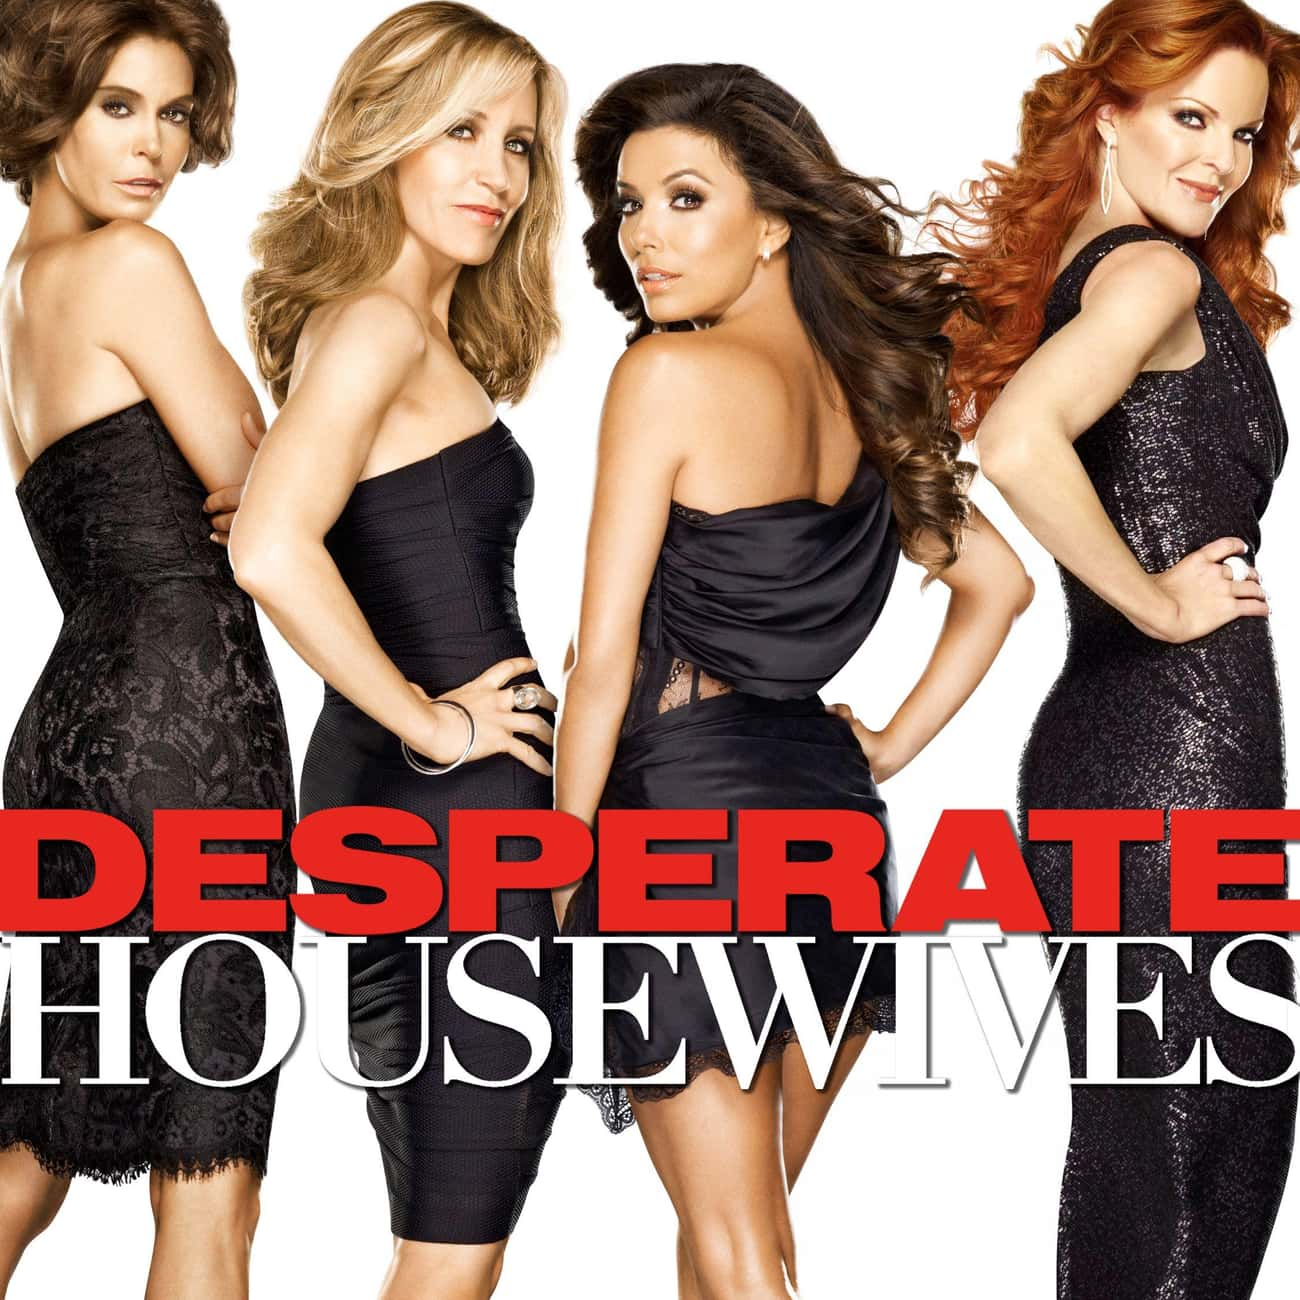 Desperate Housewives is listed (or ranked) 4 on the list The Best TV Shows With Therapy Scenes